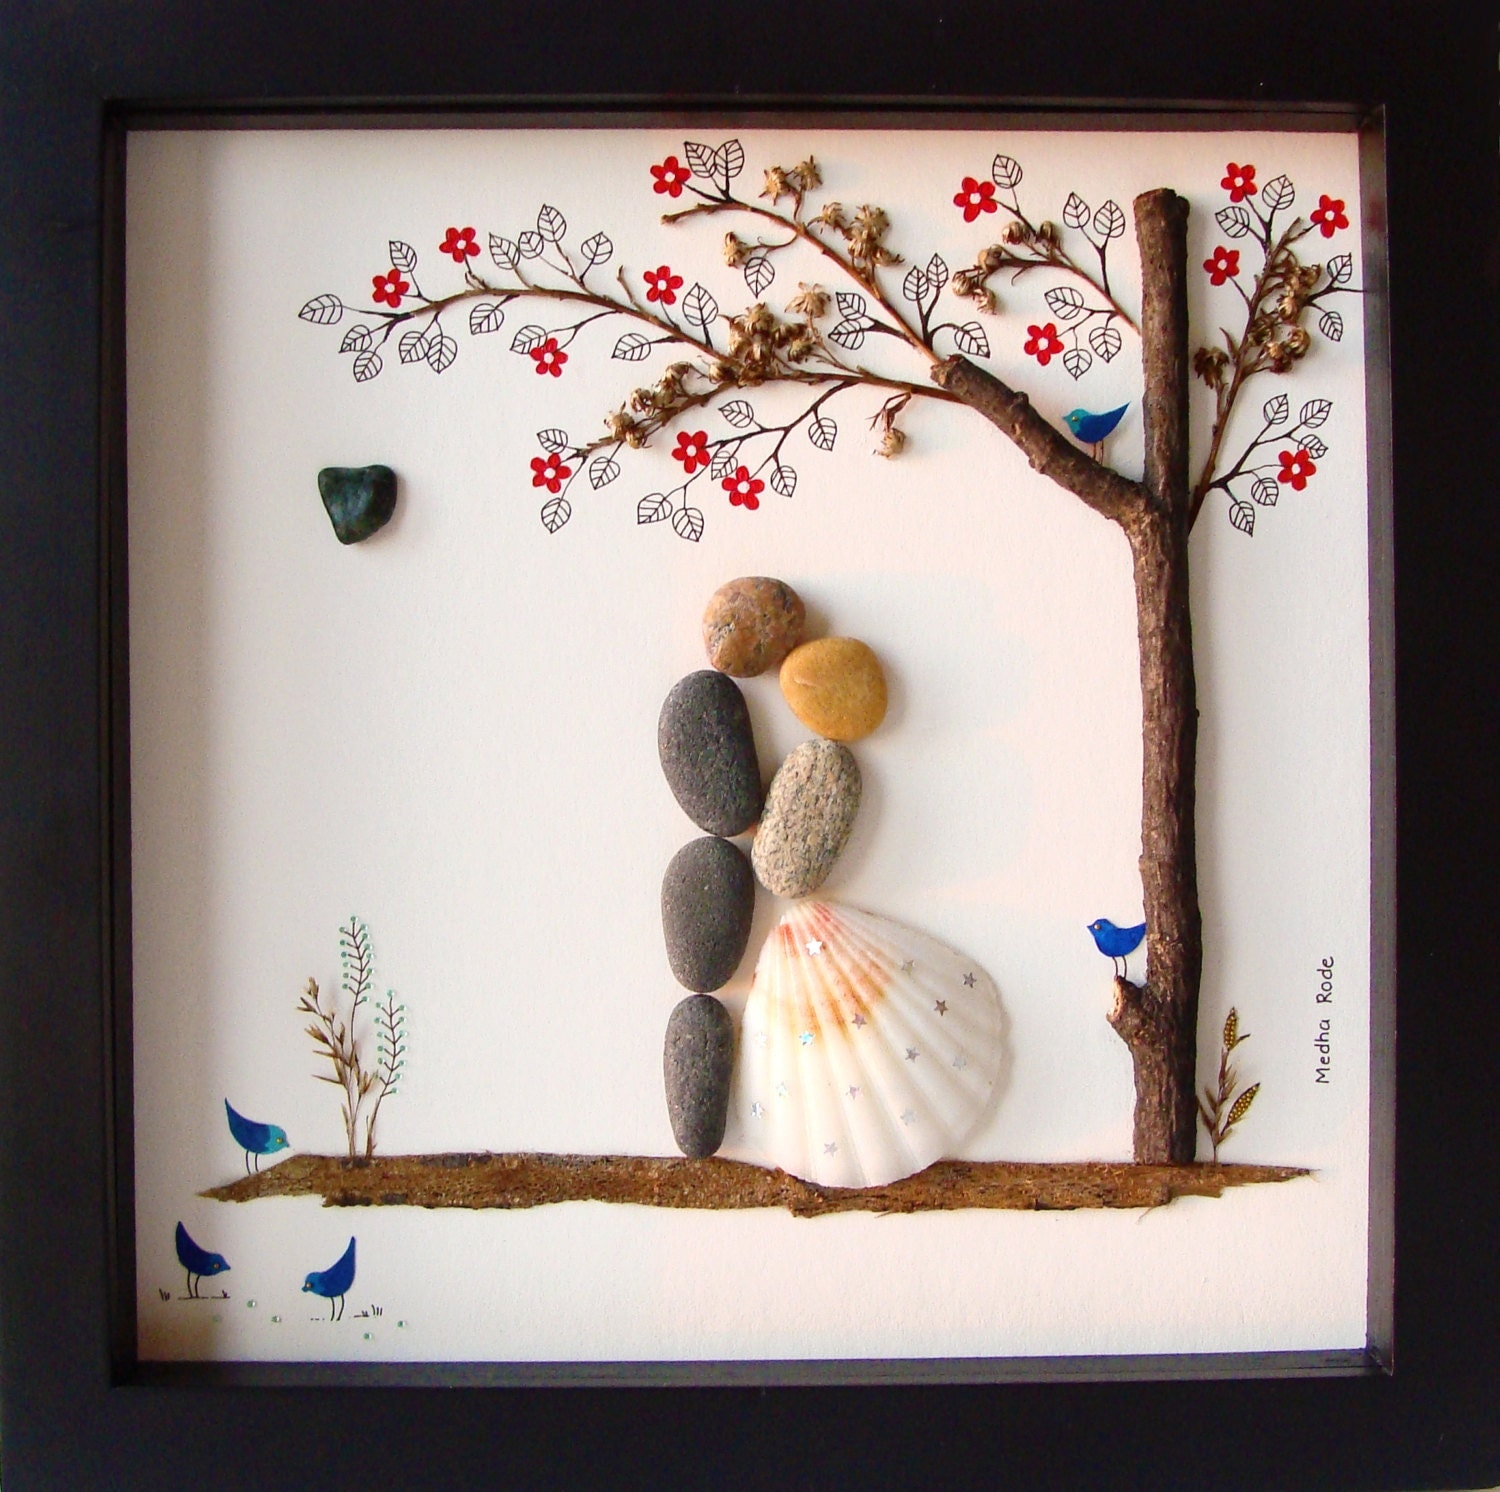 Unique WEDDING Gift-Customized Wedding Gift-Pebble Art-Unique